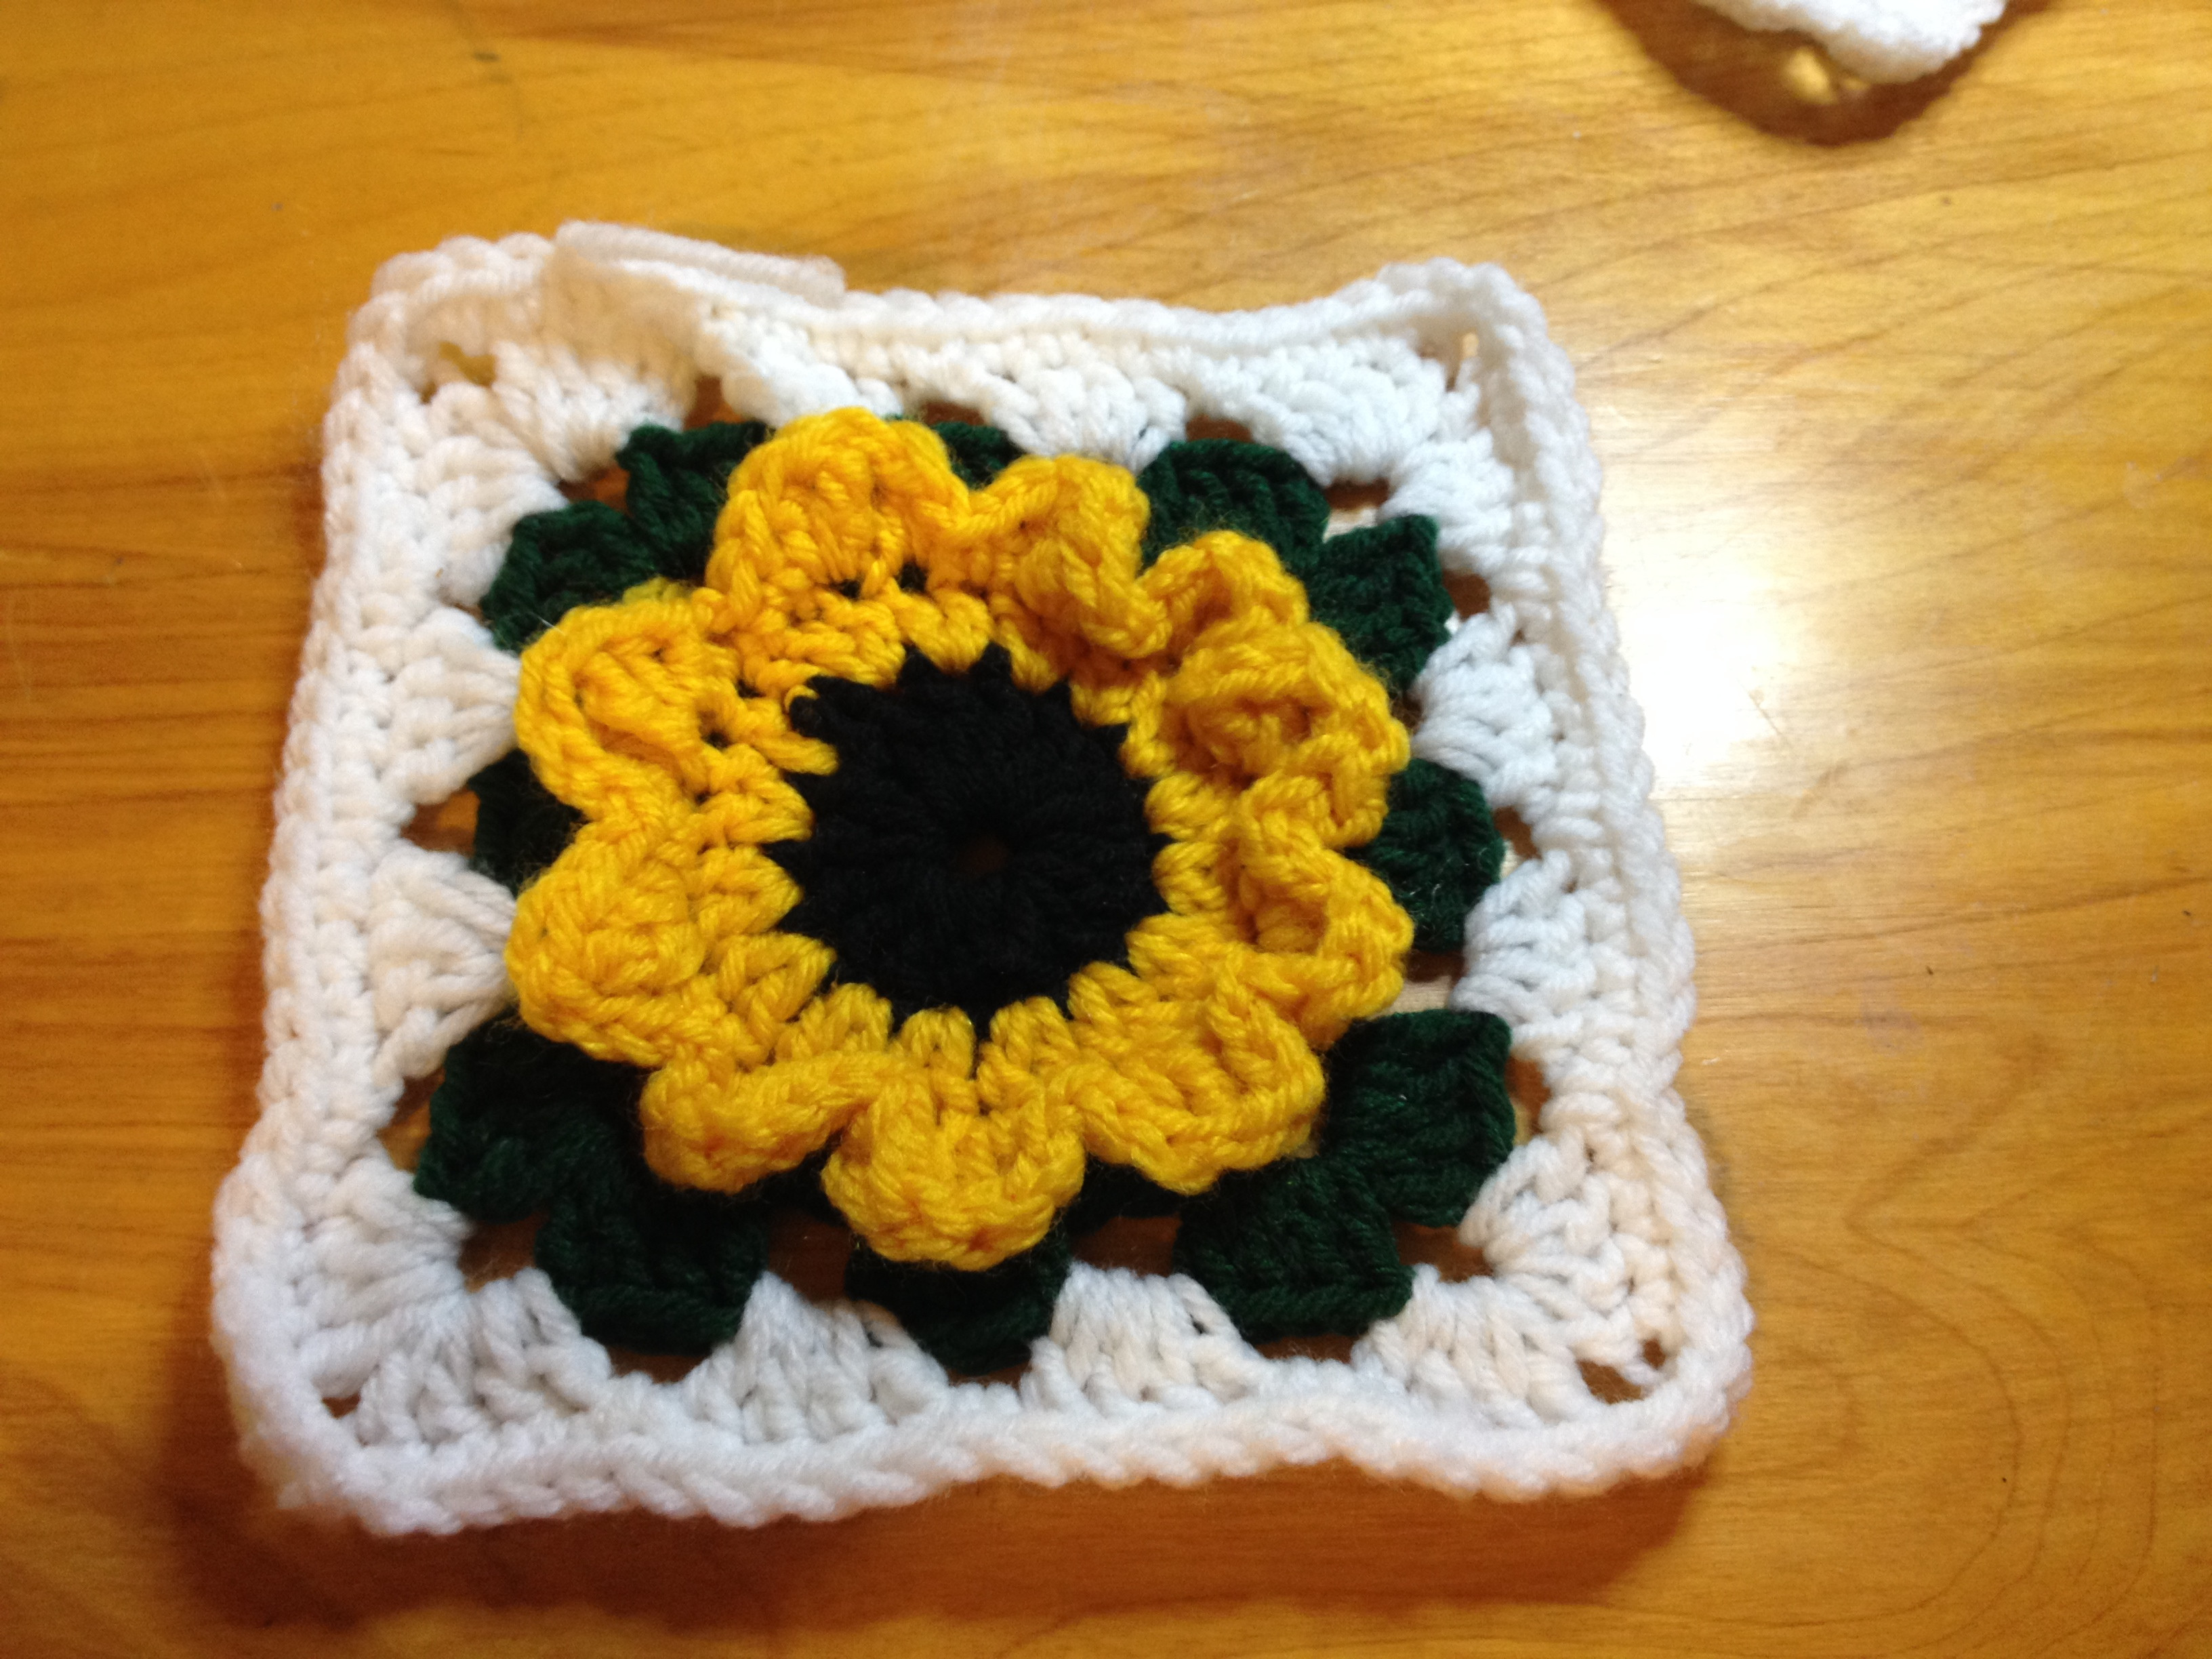 Awesome Sunflower Granny Square Crochet Sunflower Granny Square Of Delightful 41 Images Crochet Sunflower Granny Square